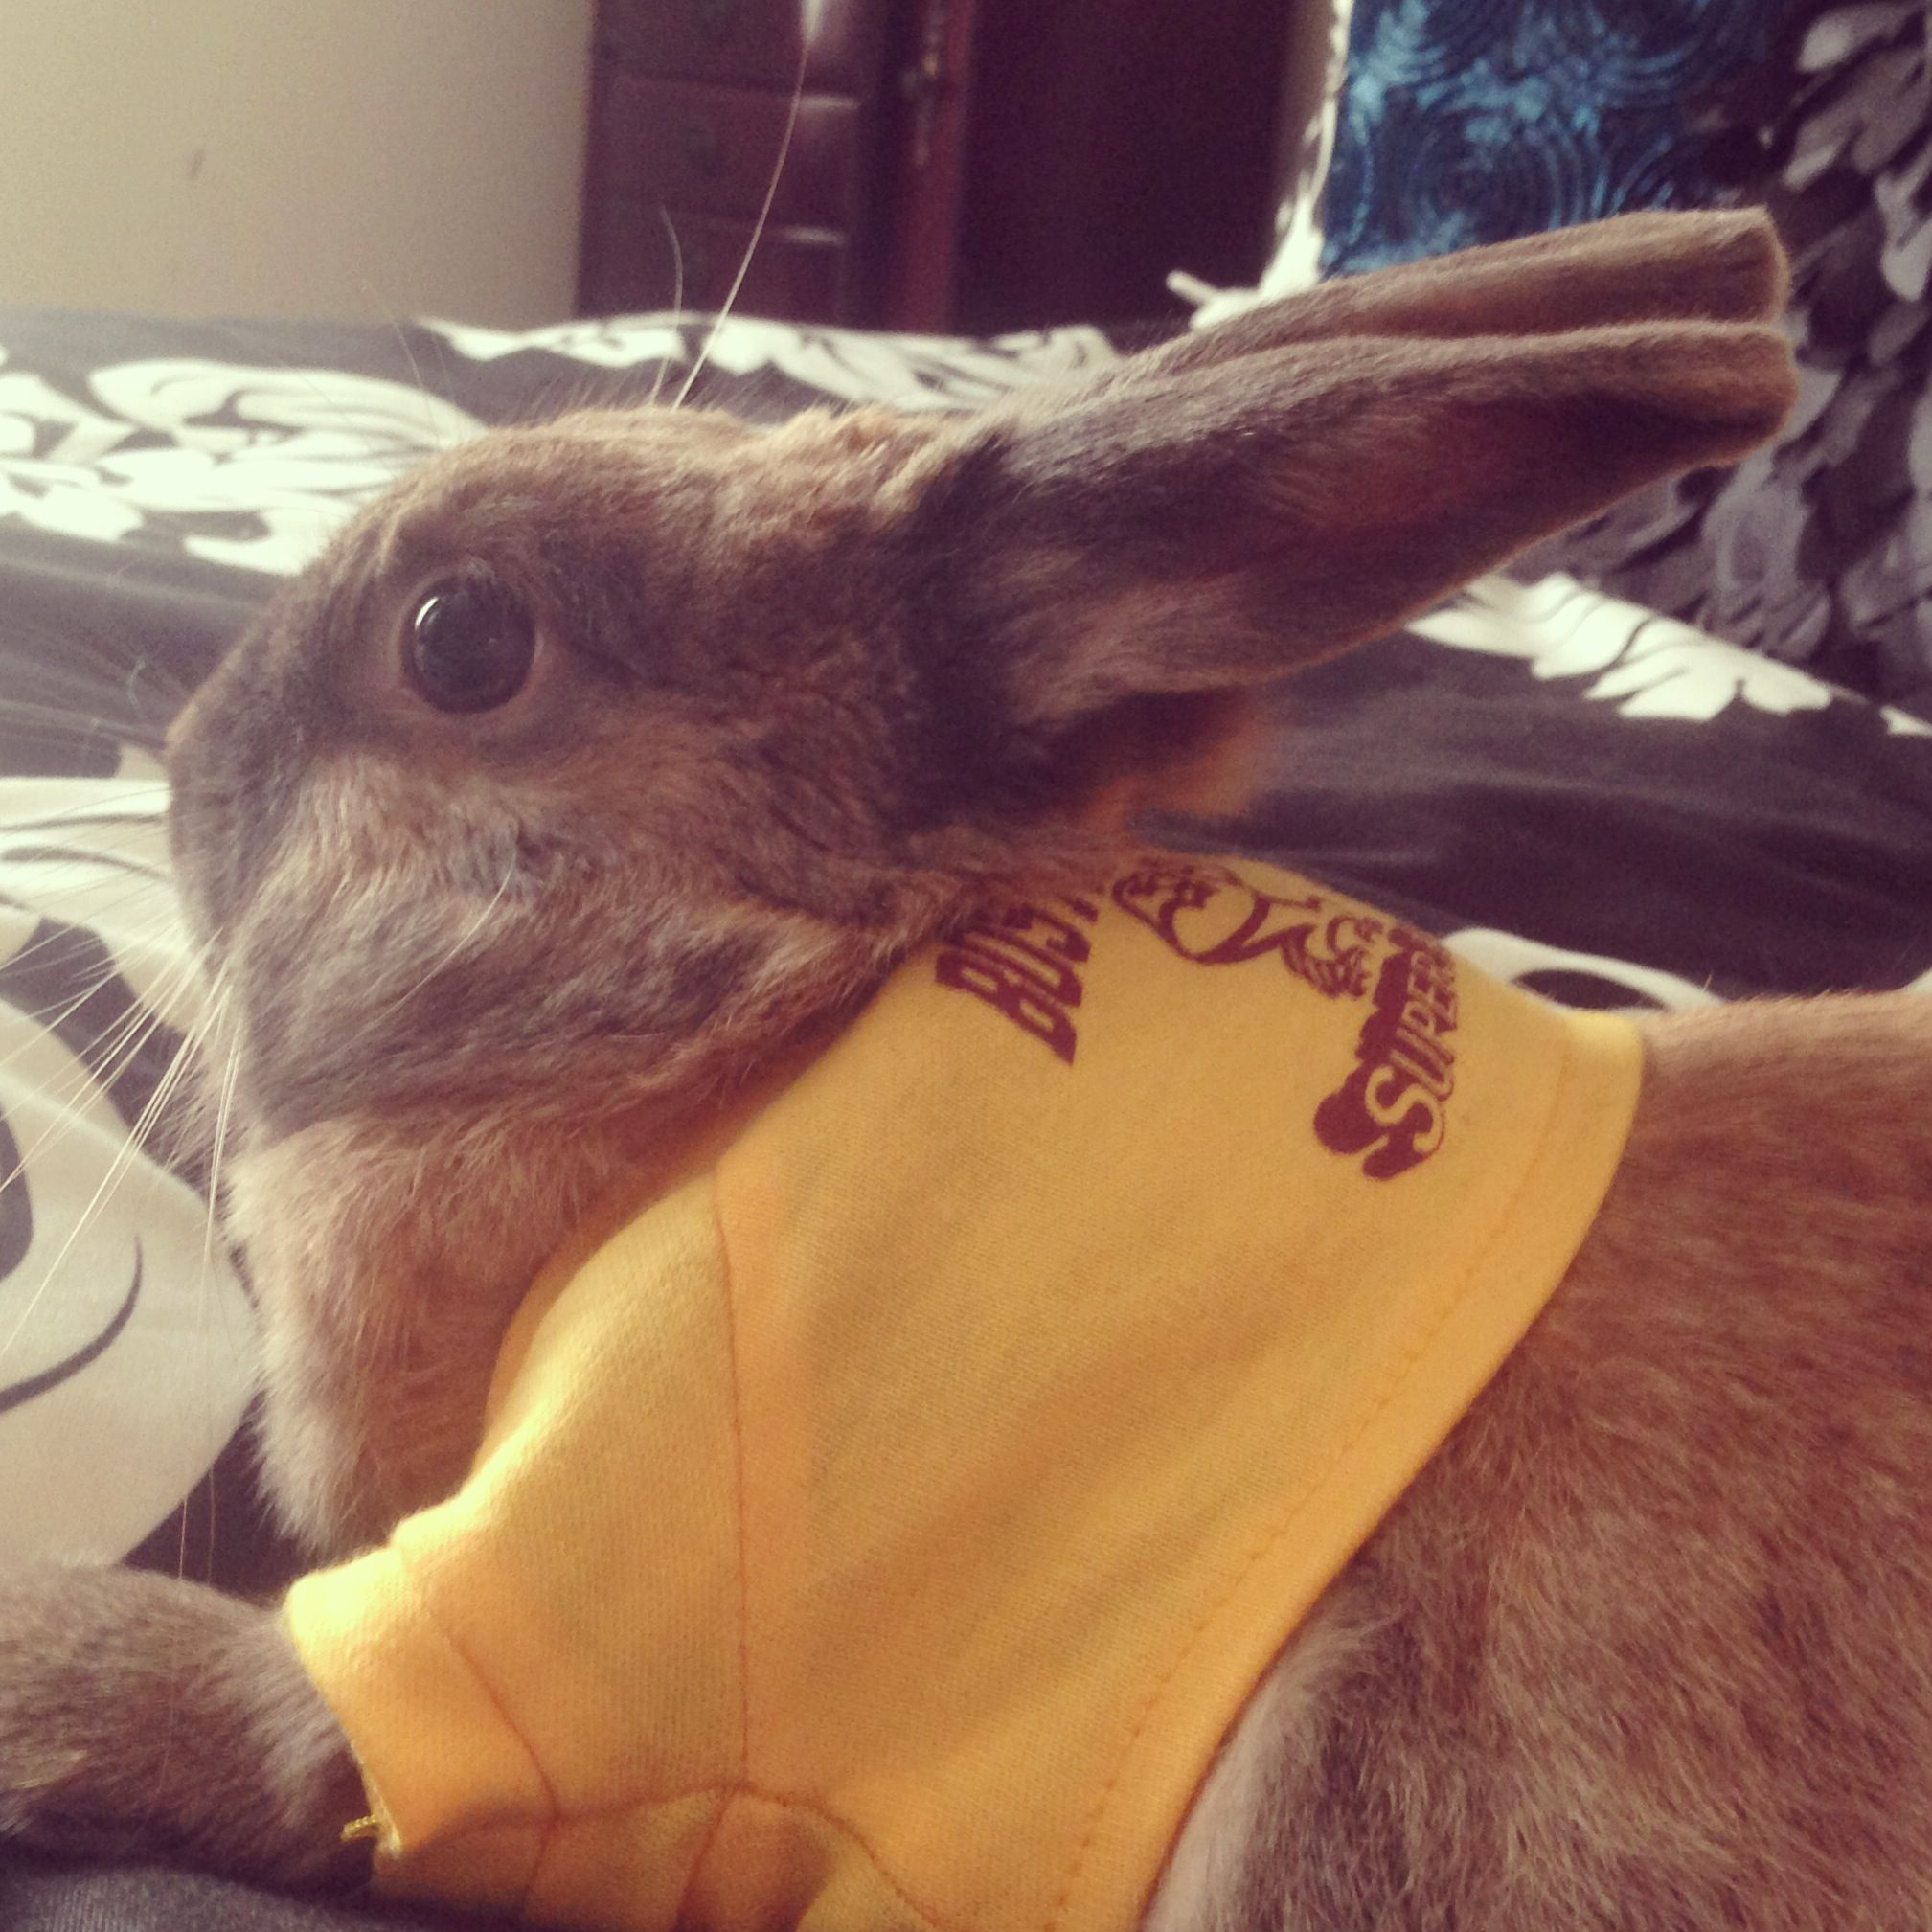 The Bunny Superfan Bailey Relaxing Furry Friend Boston College Superfan